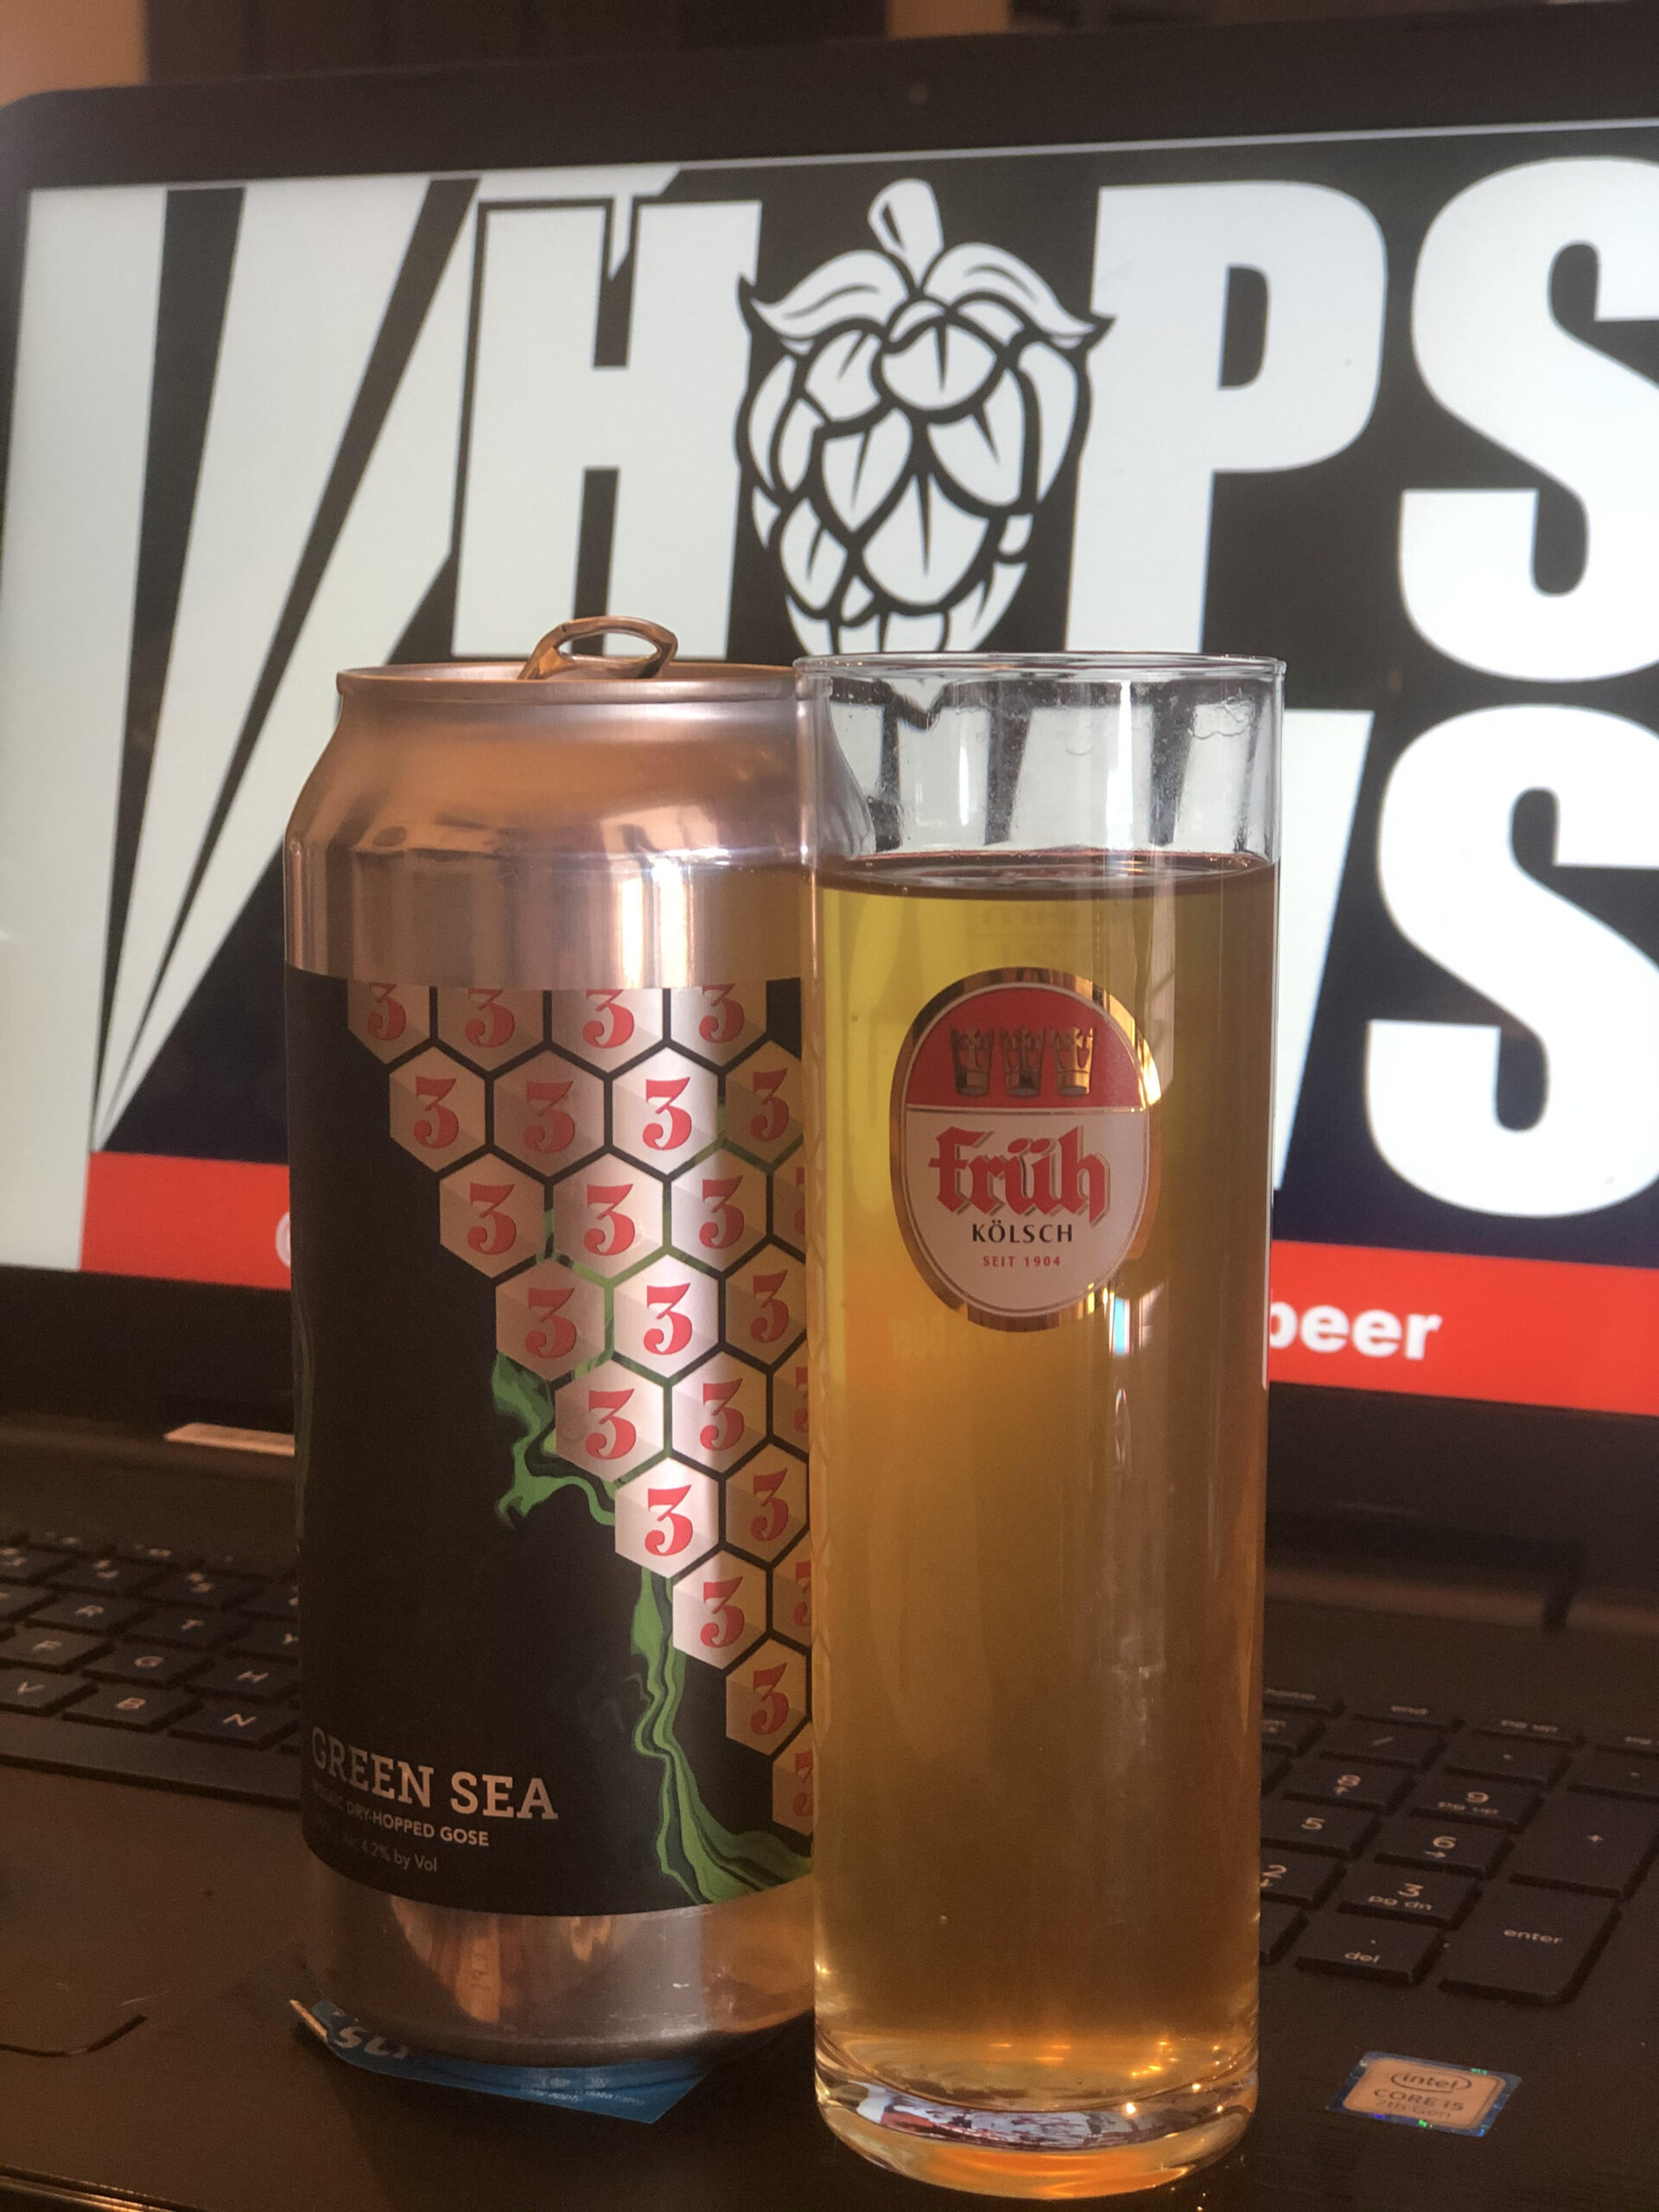 Gose from 3 sons